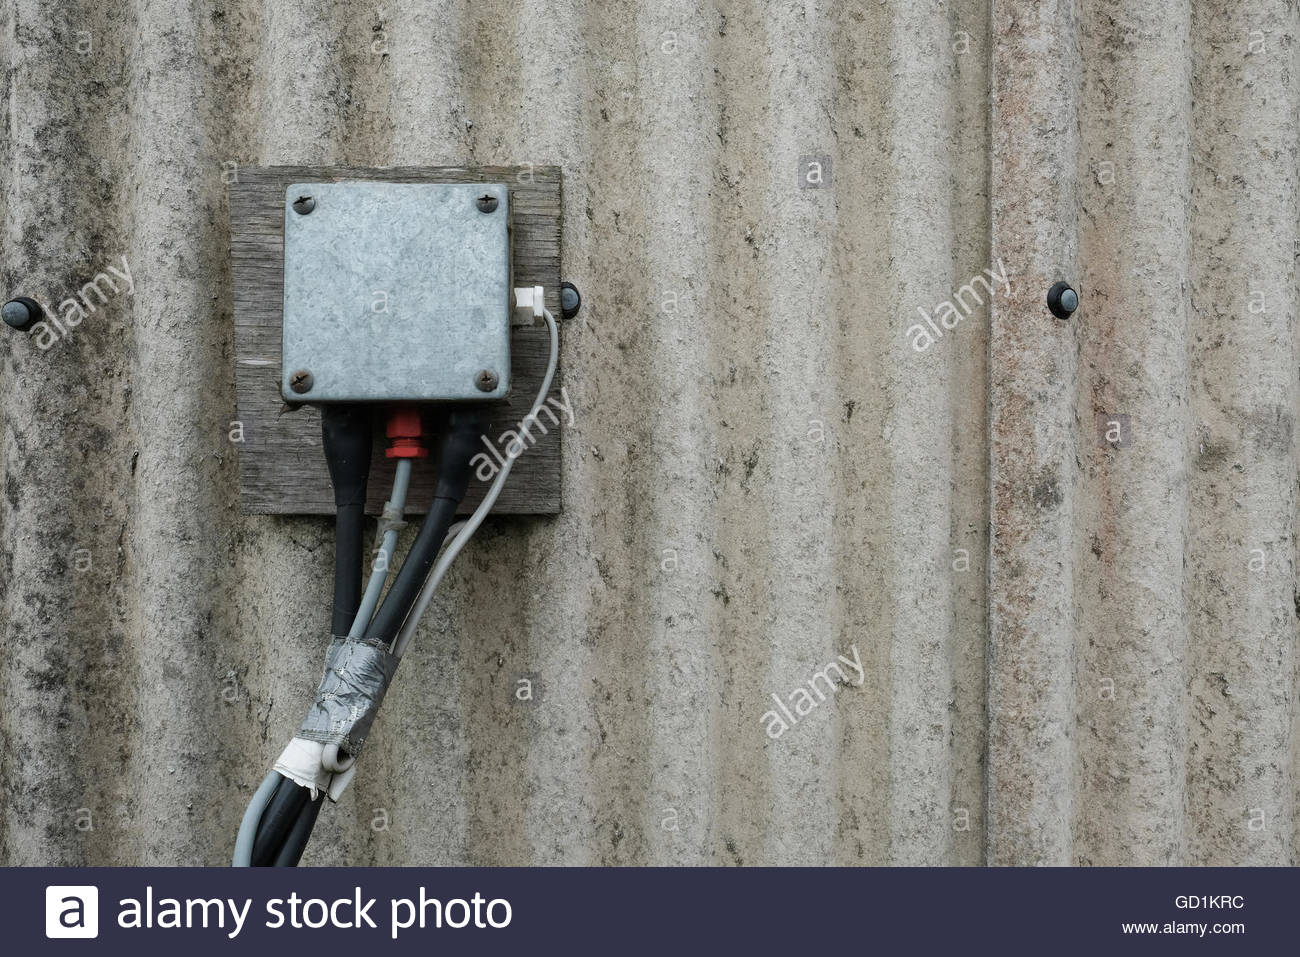 Electrical Junction Box Stock Photos House Wiring Weather Proof As Seen On The Wall Of An Agricultural Building